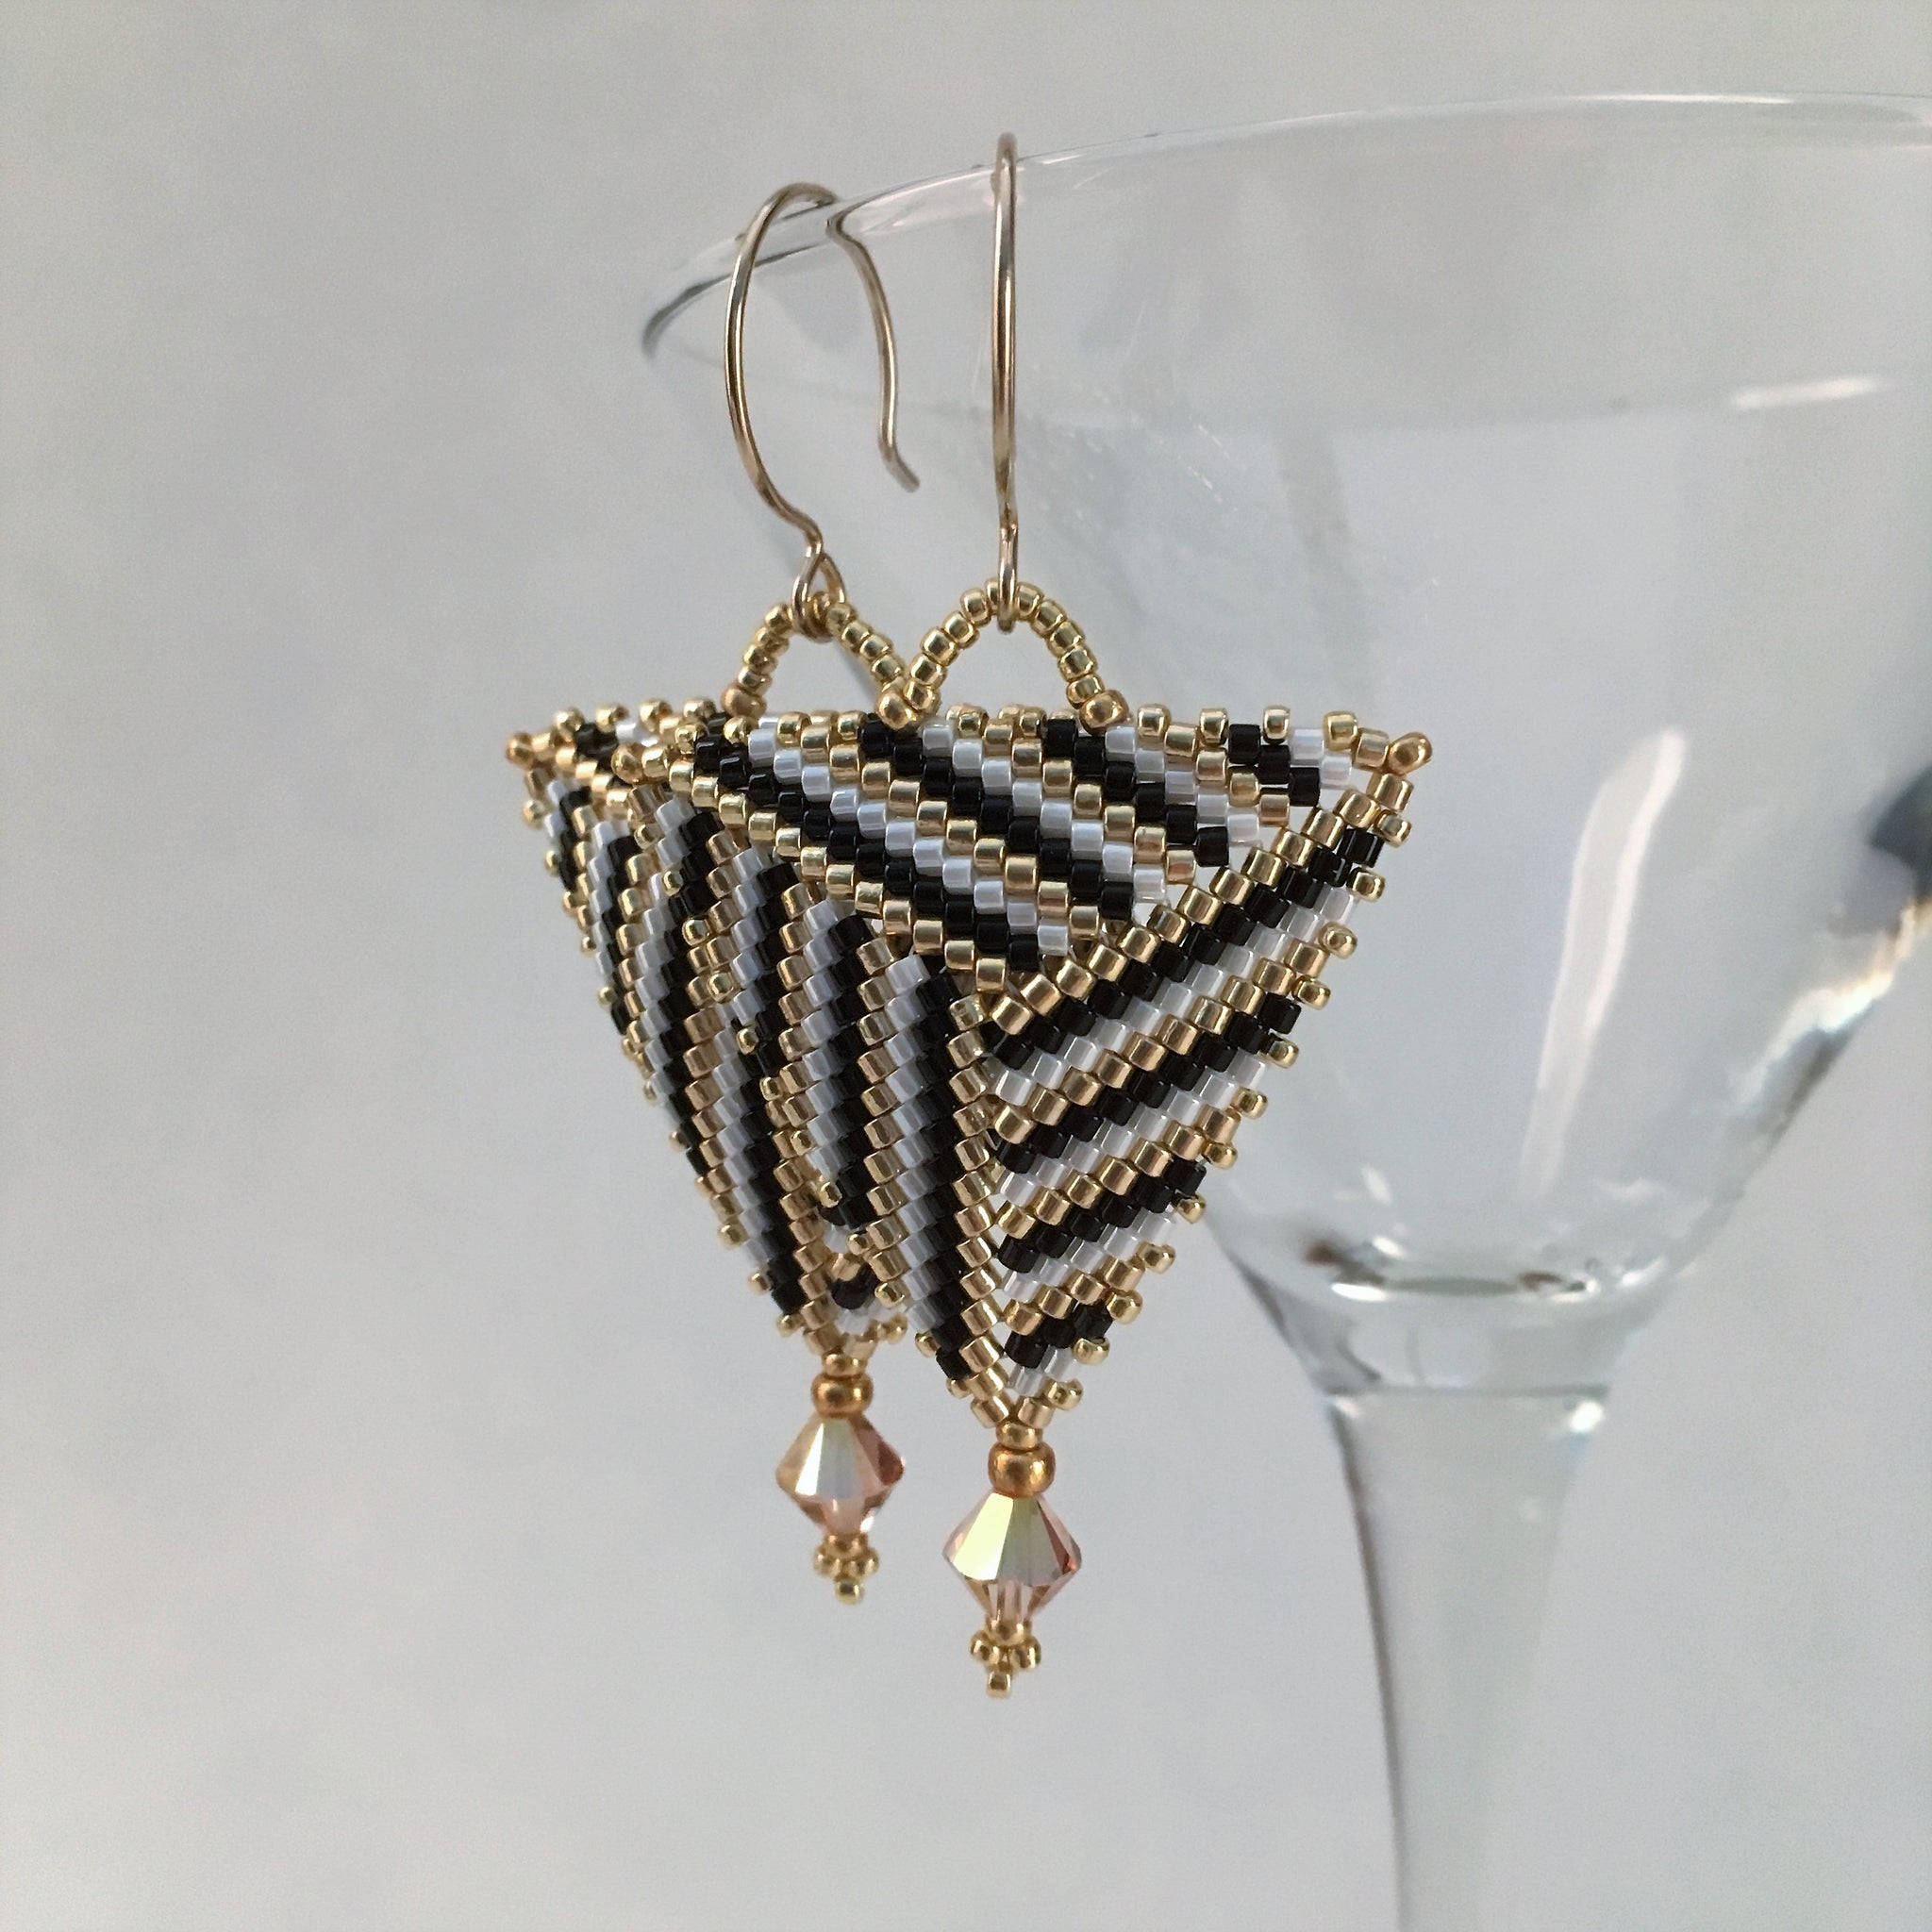 Mondern handmade beaded earrings black gold white  Swarovski crystals 14K gold filled